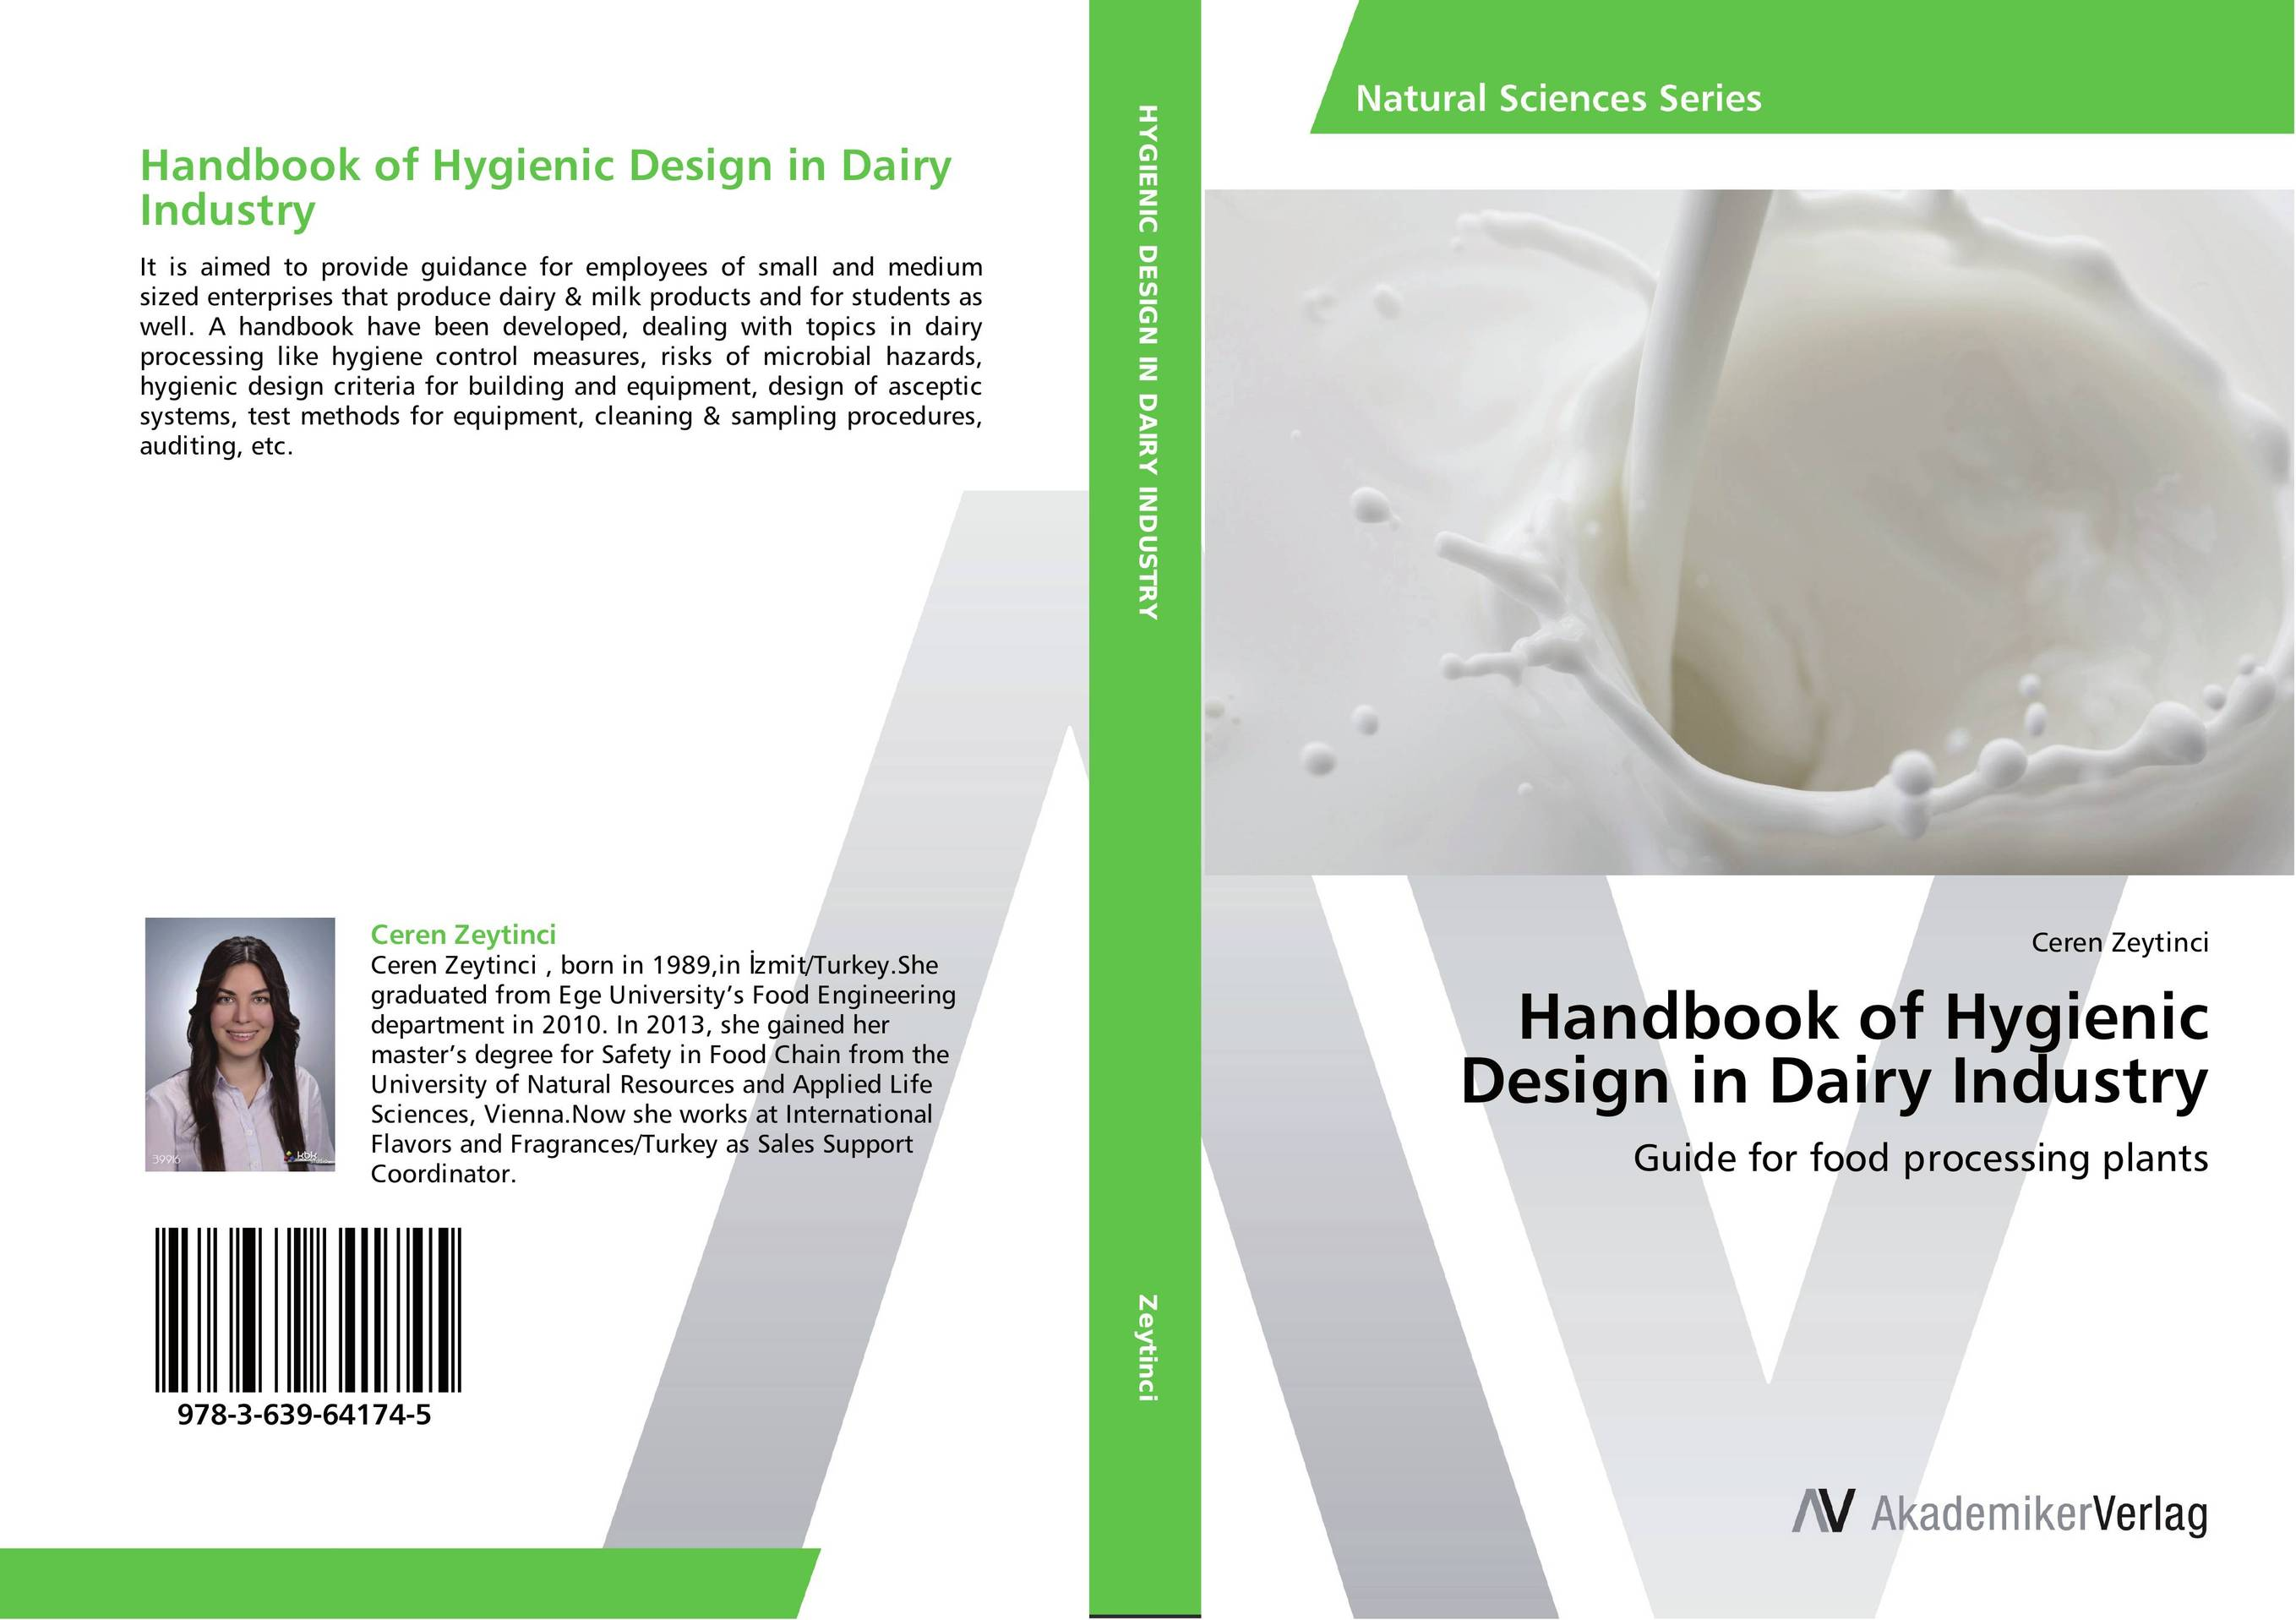 Handbook of Hygienic Design in Dairy Industry design and equipment for restaurants and foodservice